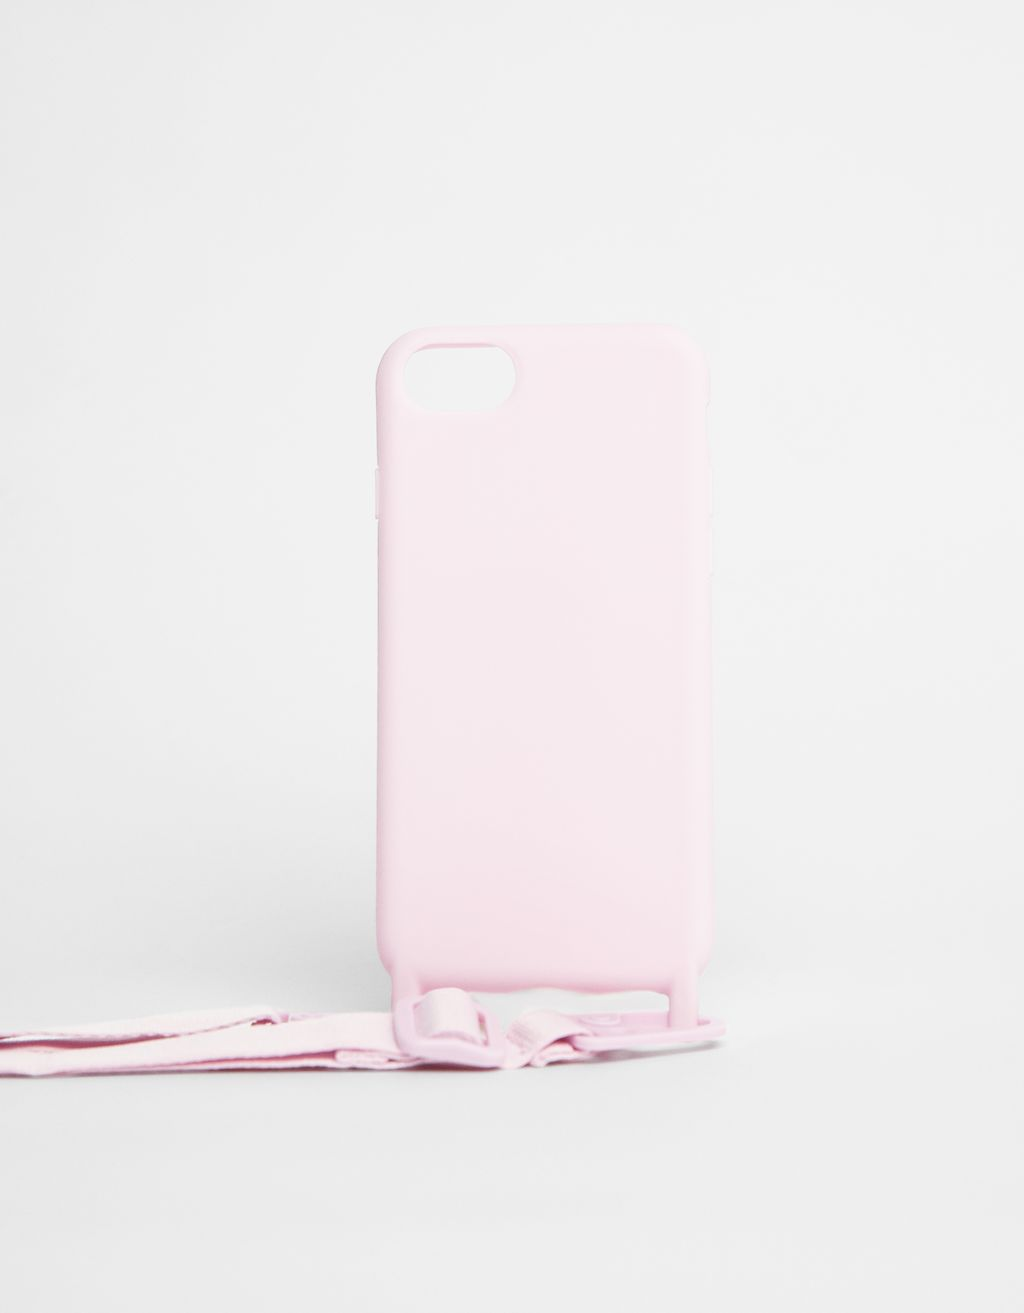 iPhone 6 / 7 / 8 case with strap